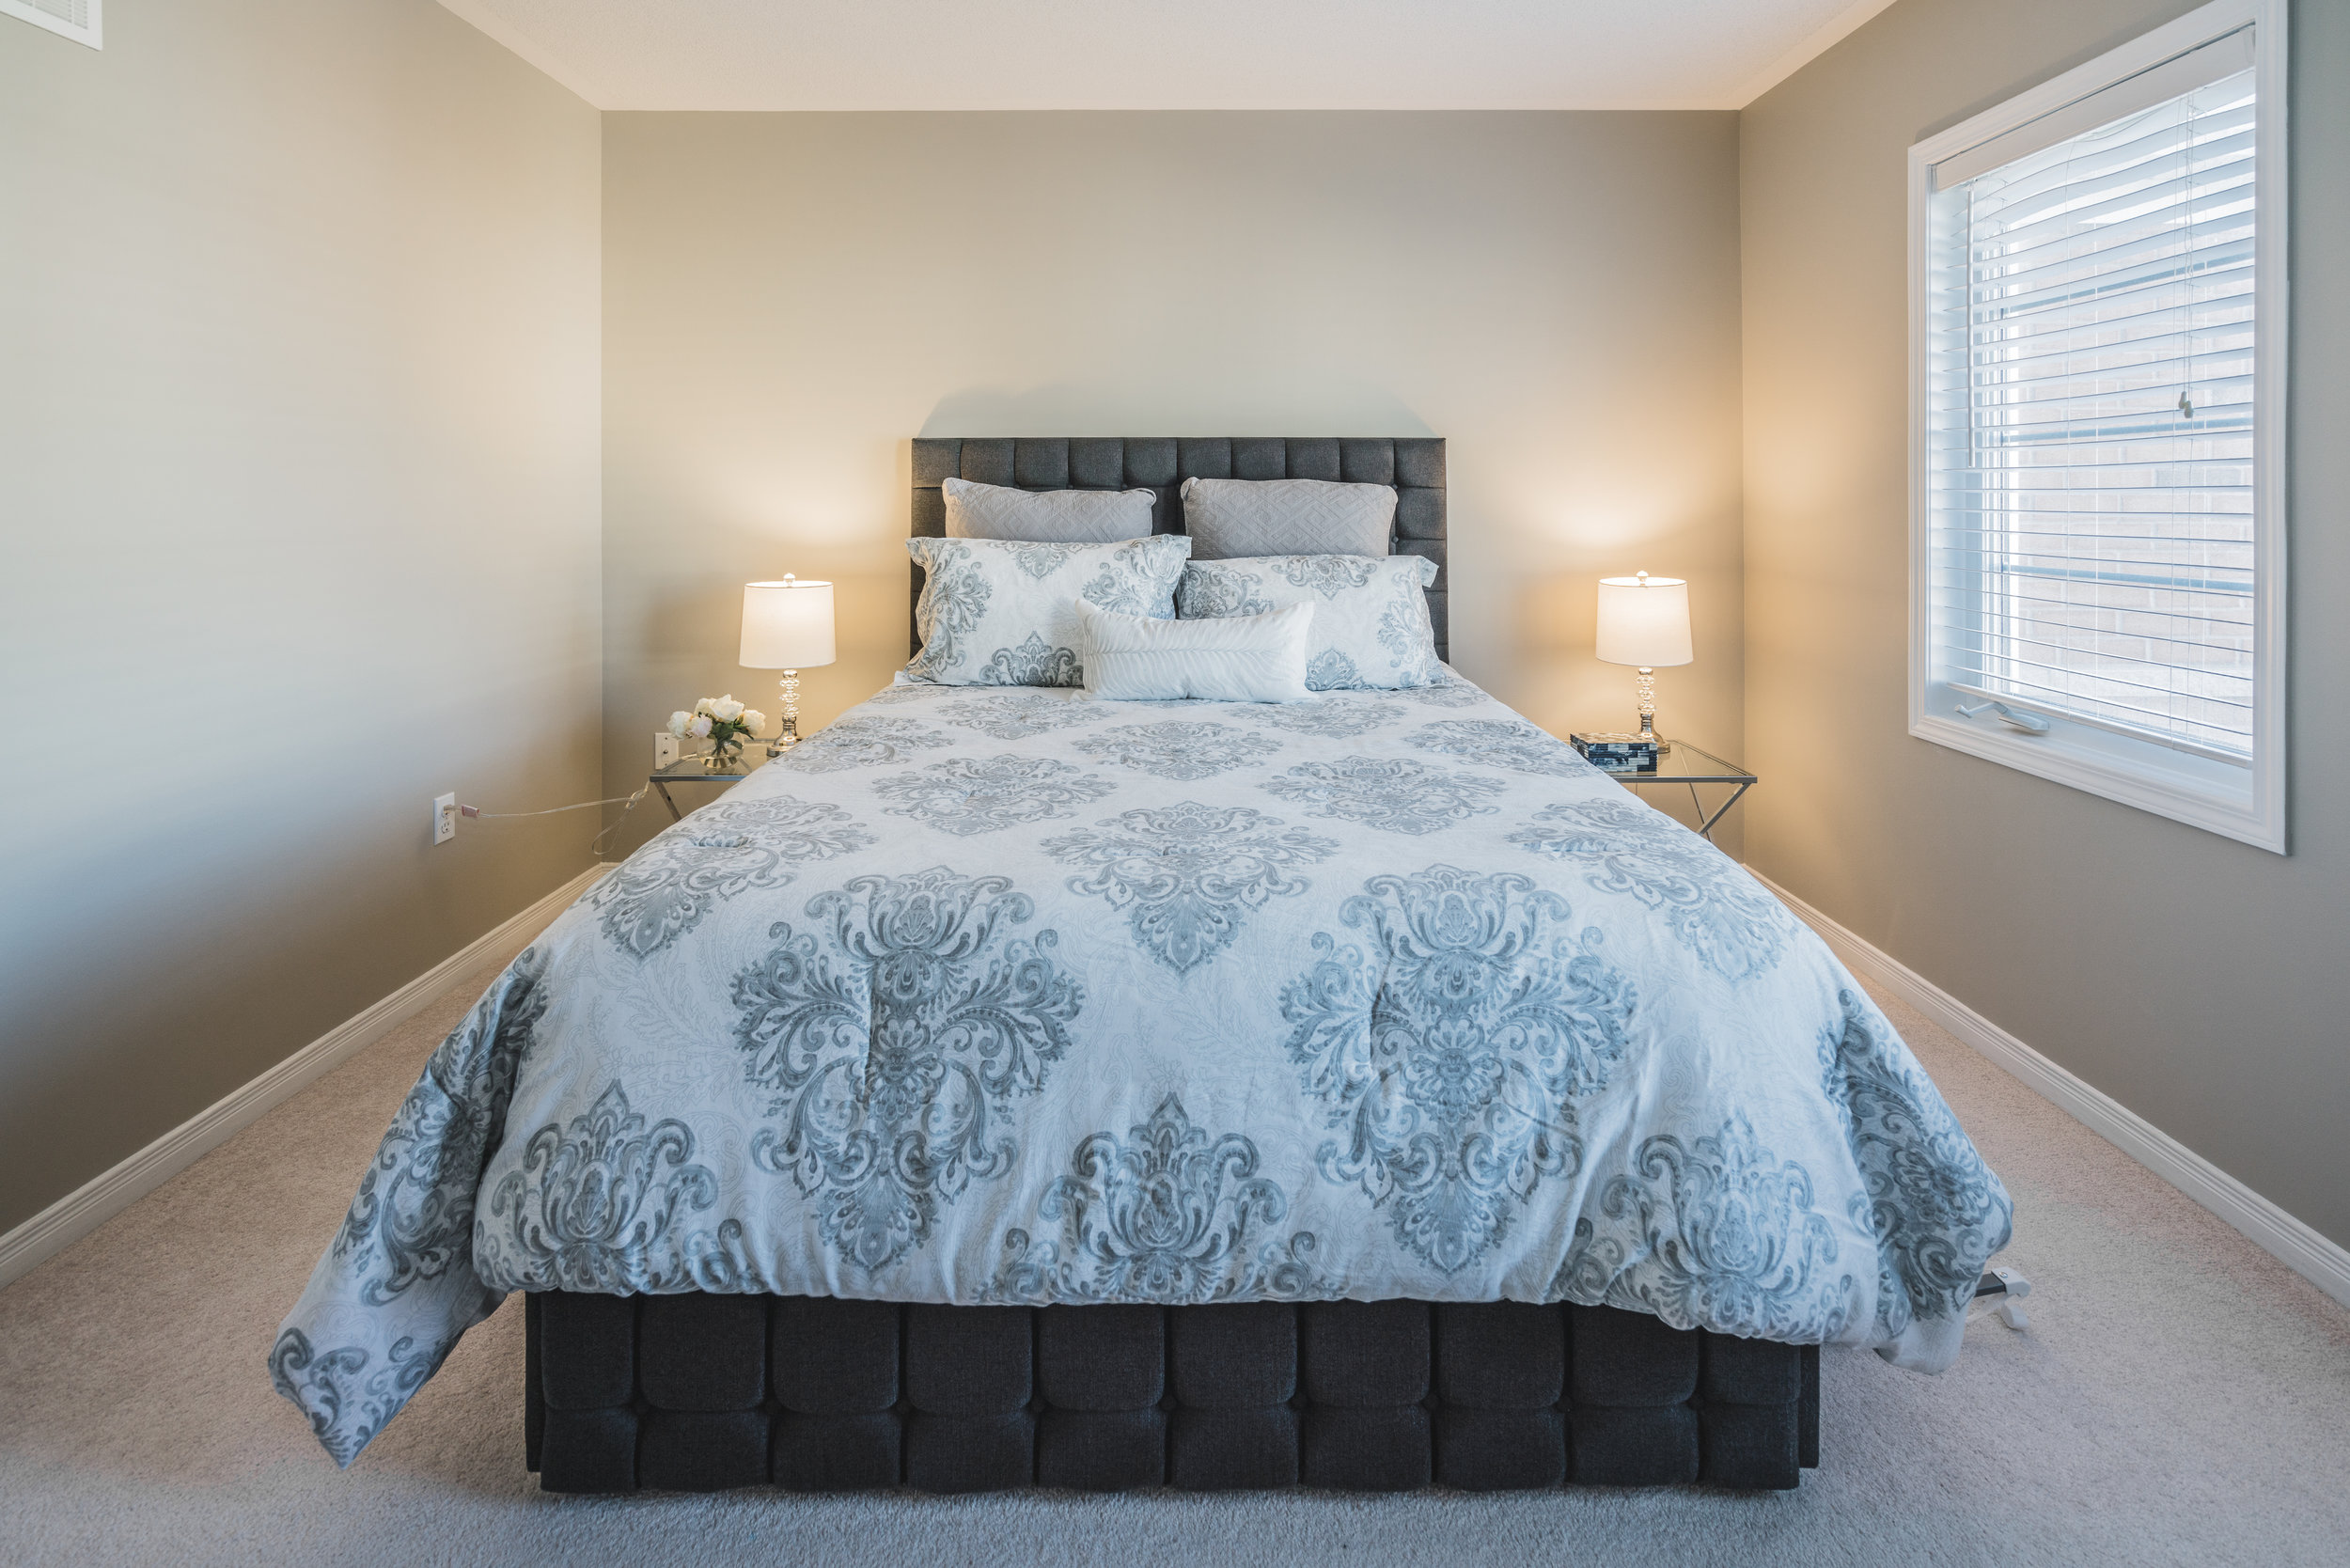 Beehive Markham occupied home staging home stager | Classy Glam Staging 7